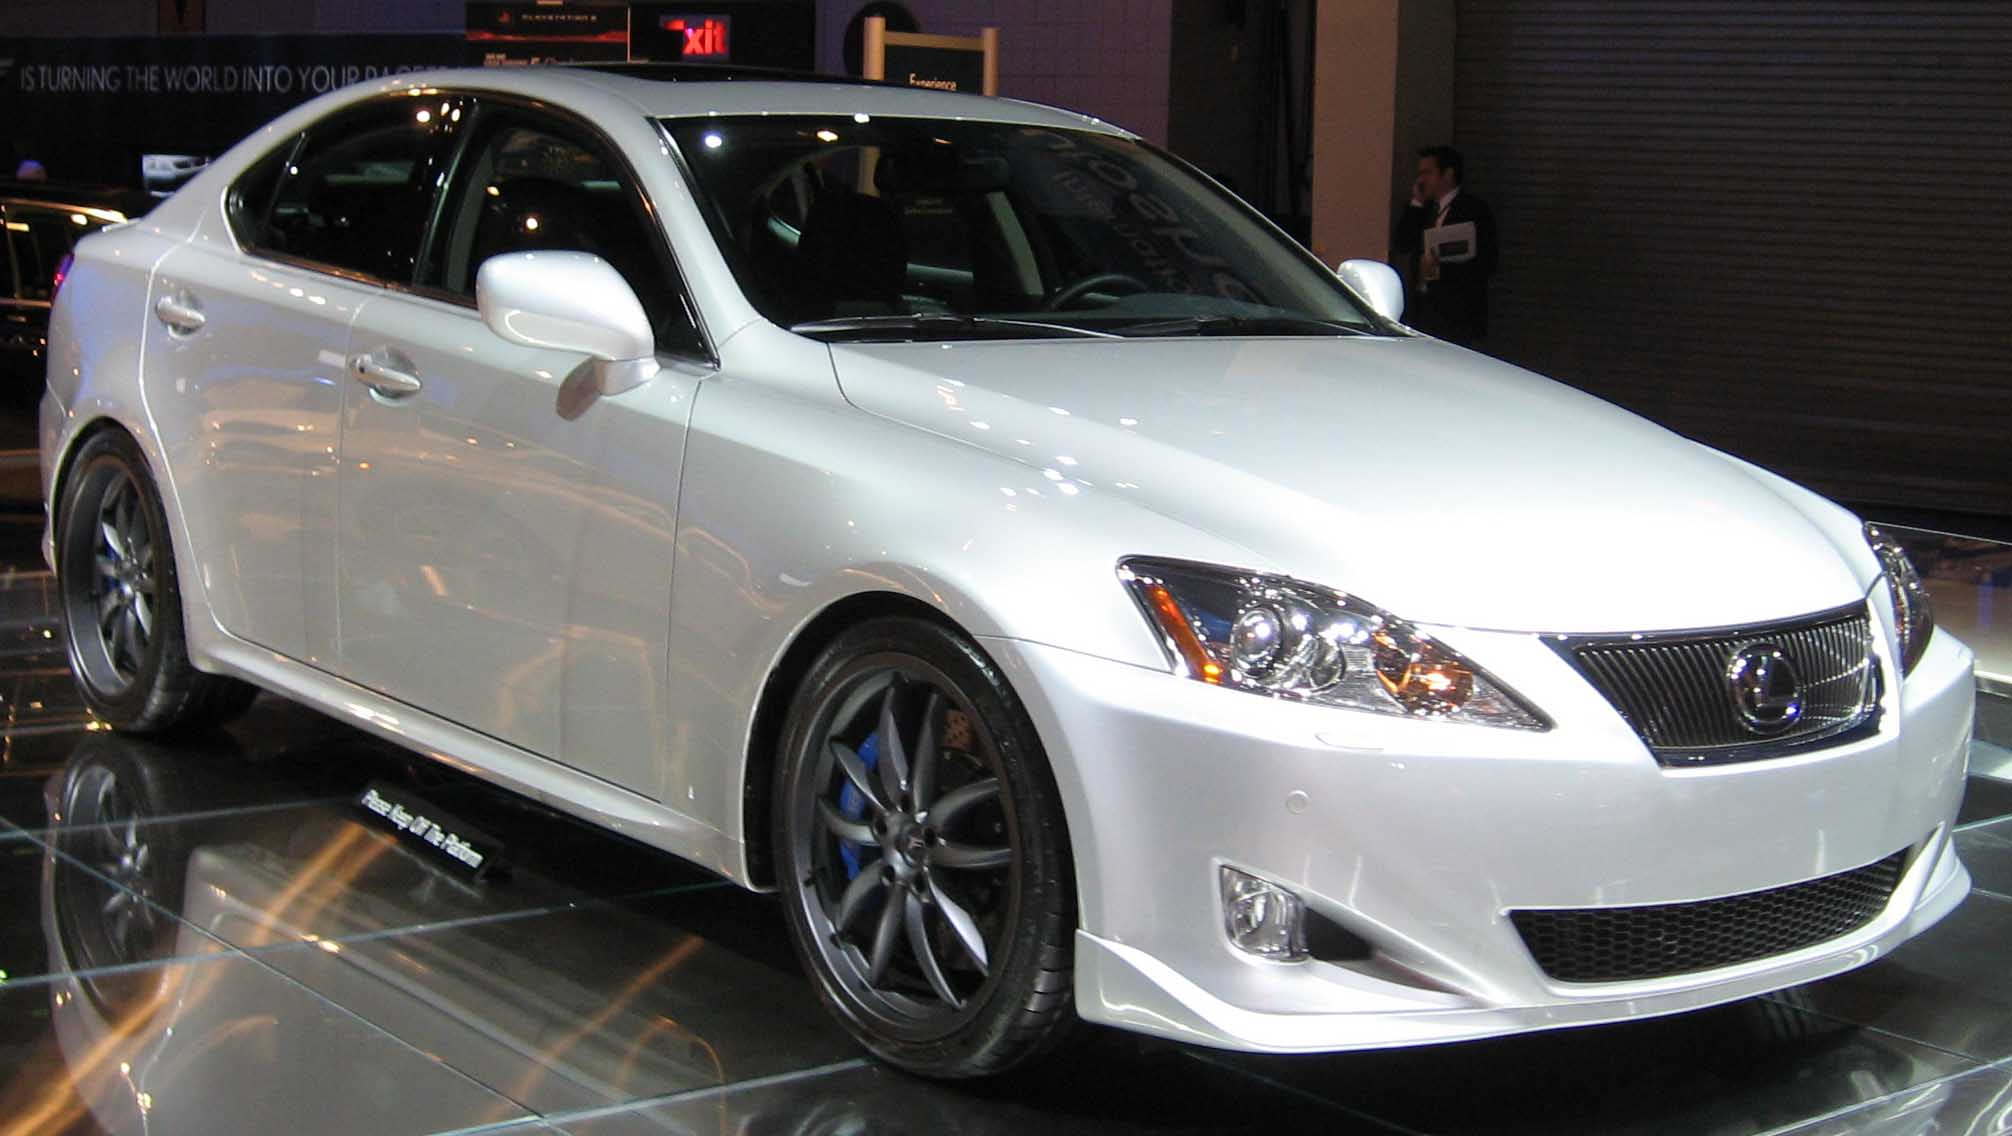 2008 Lexus Is350 Custom >> File:Lexus IS-F NY.jpg - Wikimedia Commons